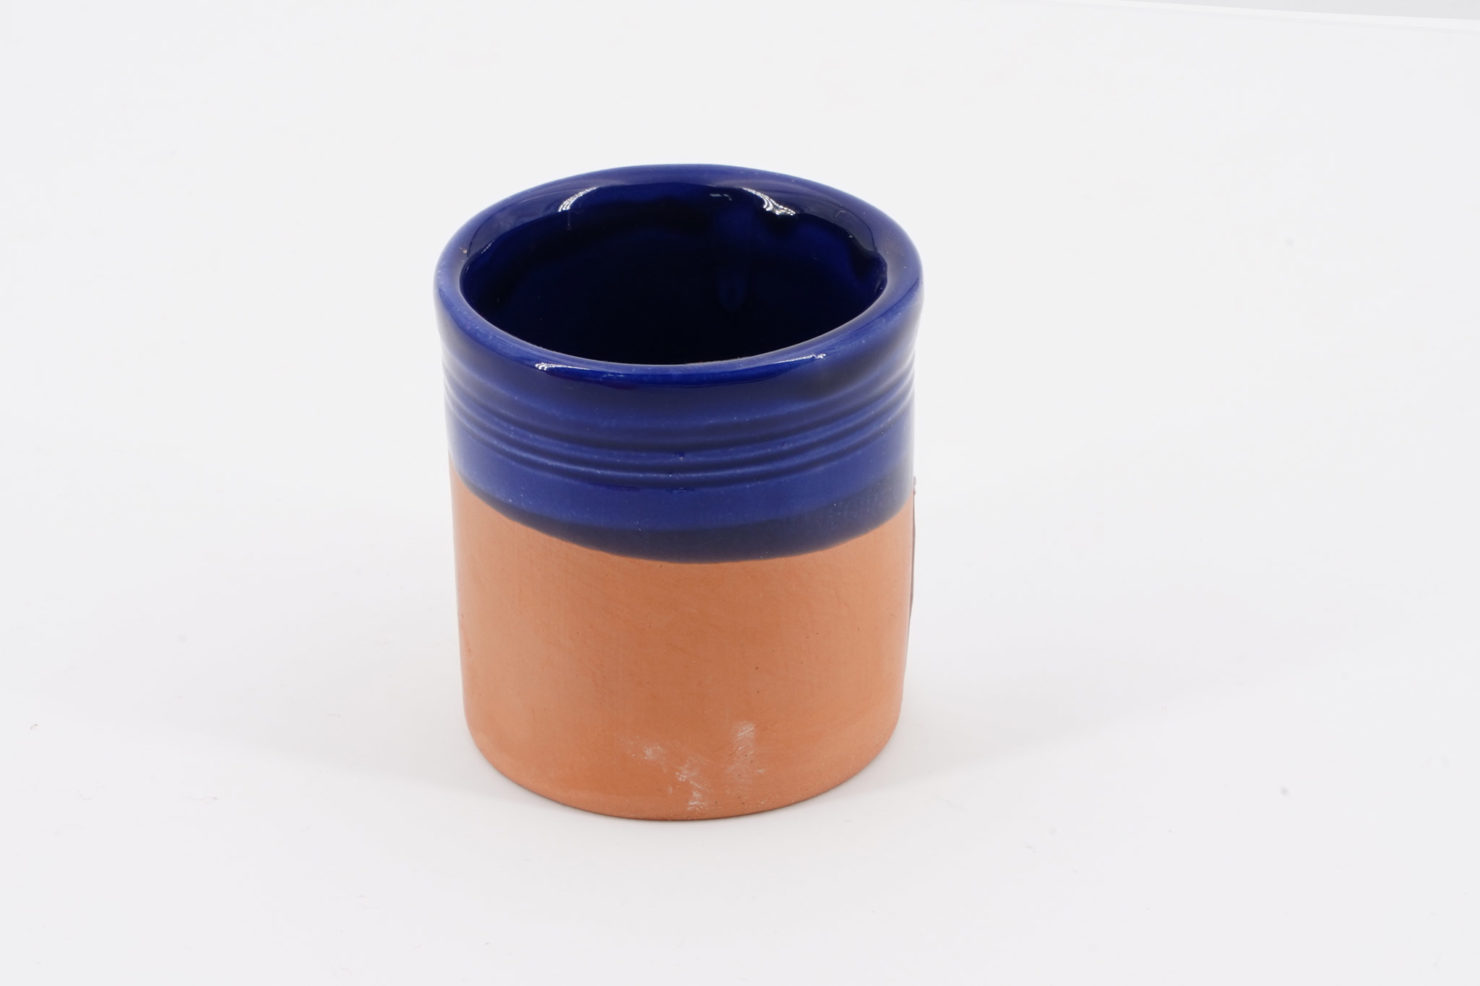 SMALL CERAMIC GLASS - FASANO CERAMICHE BLUE